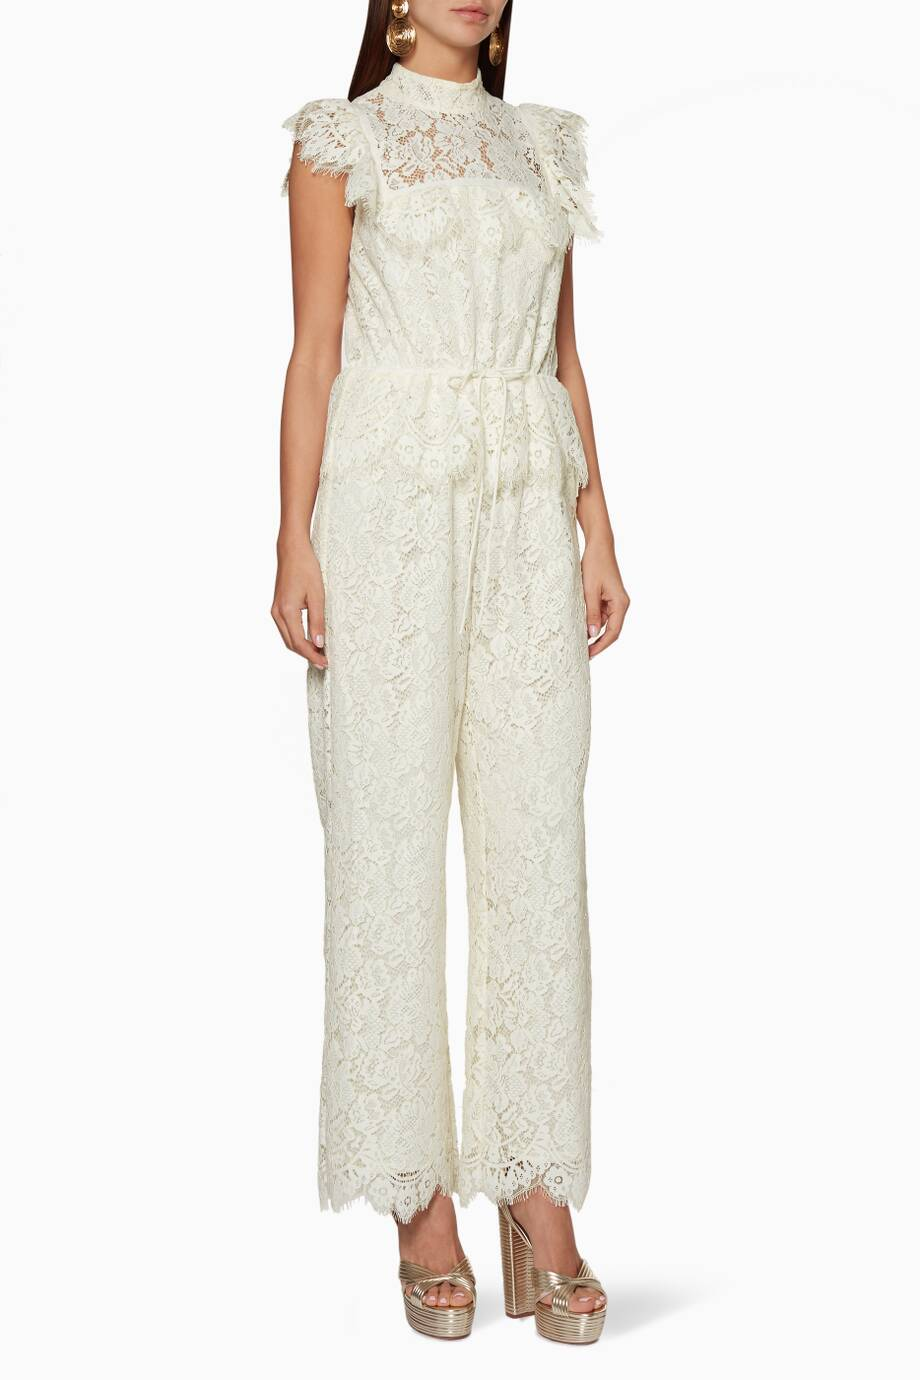 Shop Women's Jumpsuits at bonjournal.tk and explore the essential collection of short jumpsuits, modern jumpsuits, wrap jumpsuits, and more. Free shipping and returns. Theory WHITE. Silk Combo Jumpsuit $ - $ More Colors Available More Colors Available BLACK.